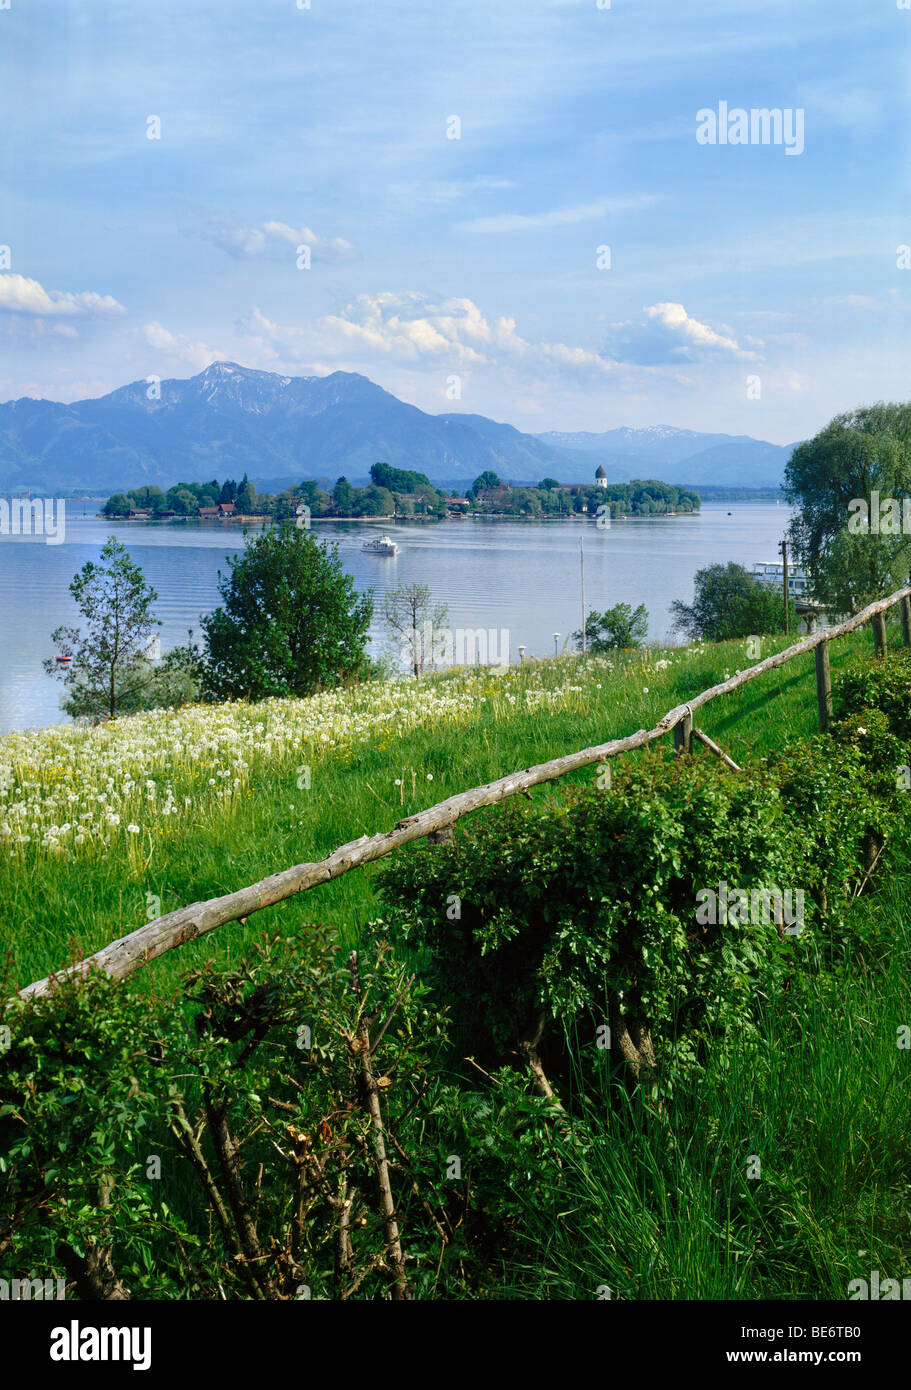 The Island Fraueninsel, Chiemsee lake in front of the Hochgern Mountain, Chiemgau, Upper Bavaria, Bavaria, Germany, Stock Photo